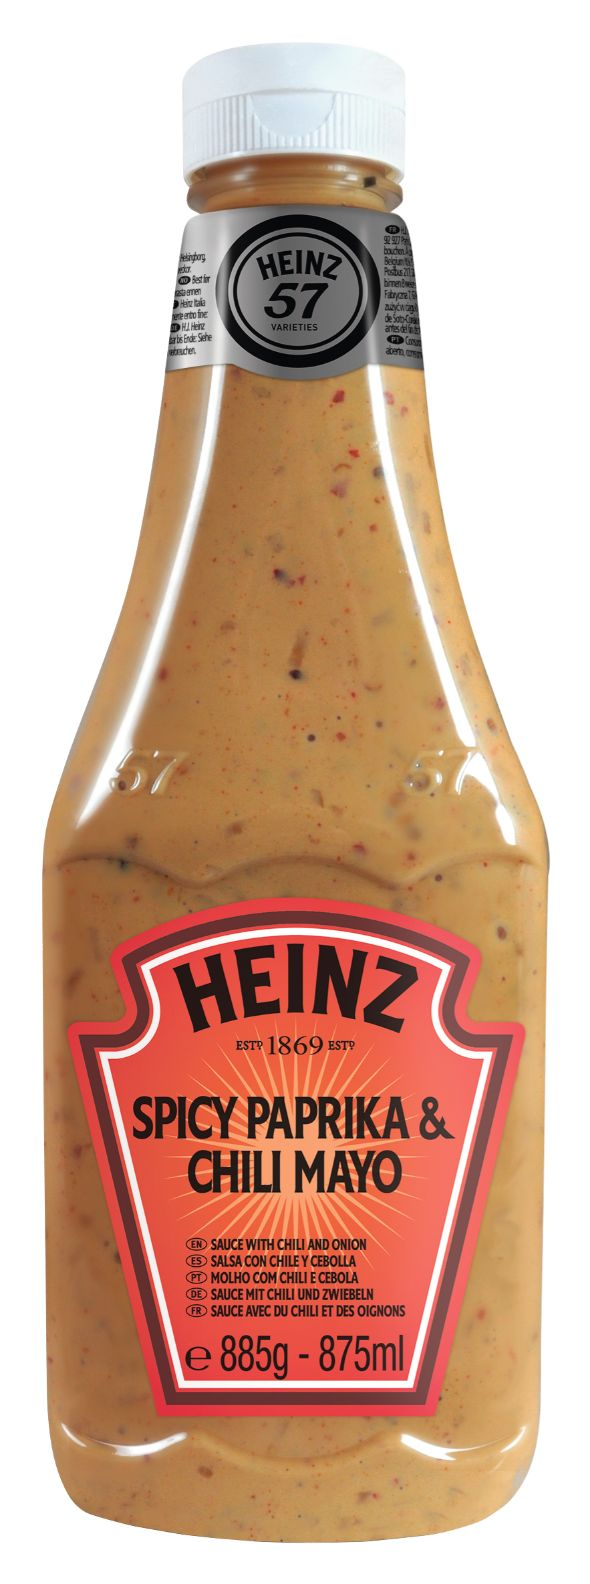 Heinz Spicy Paprika & Chili Mayo 875ml image